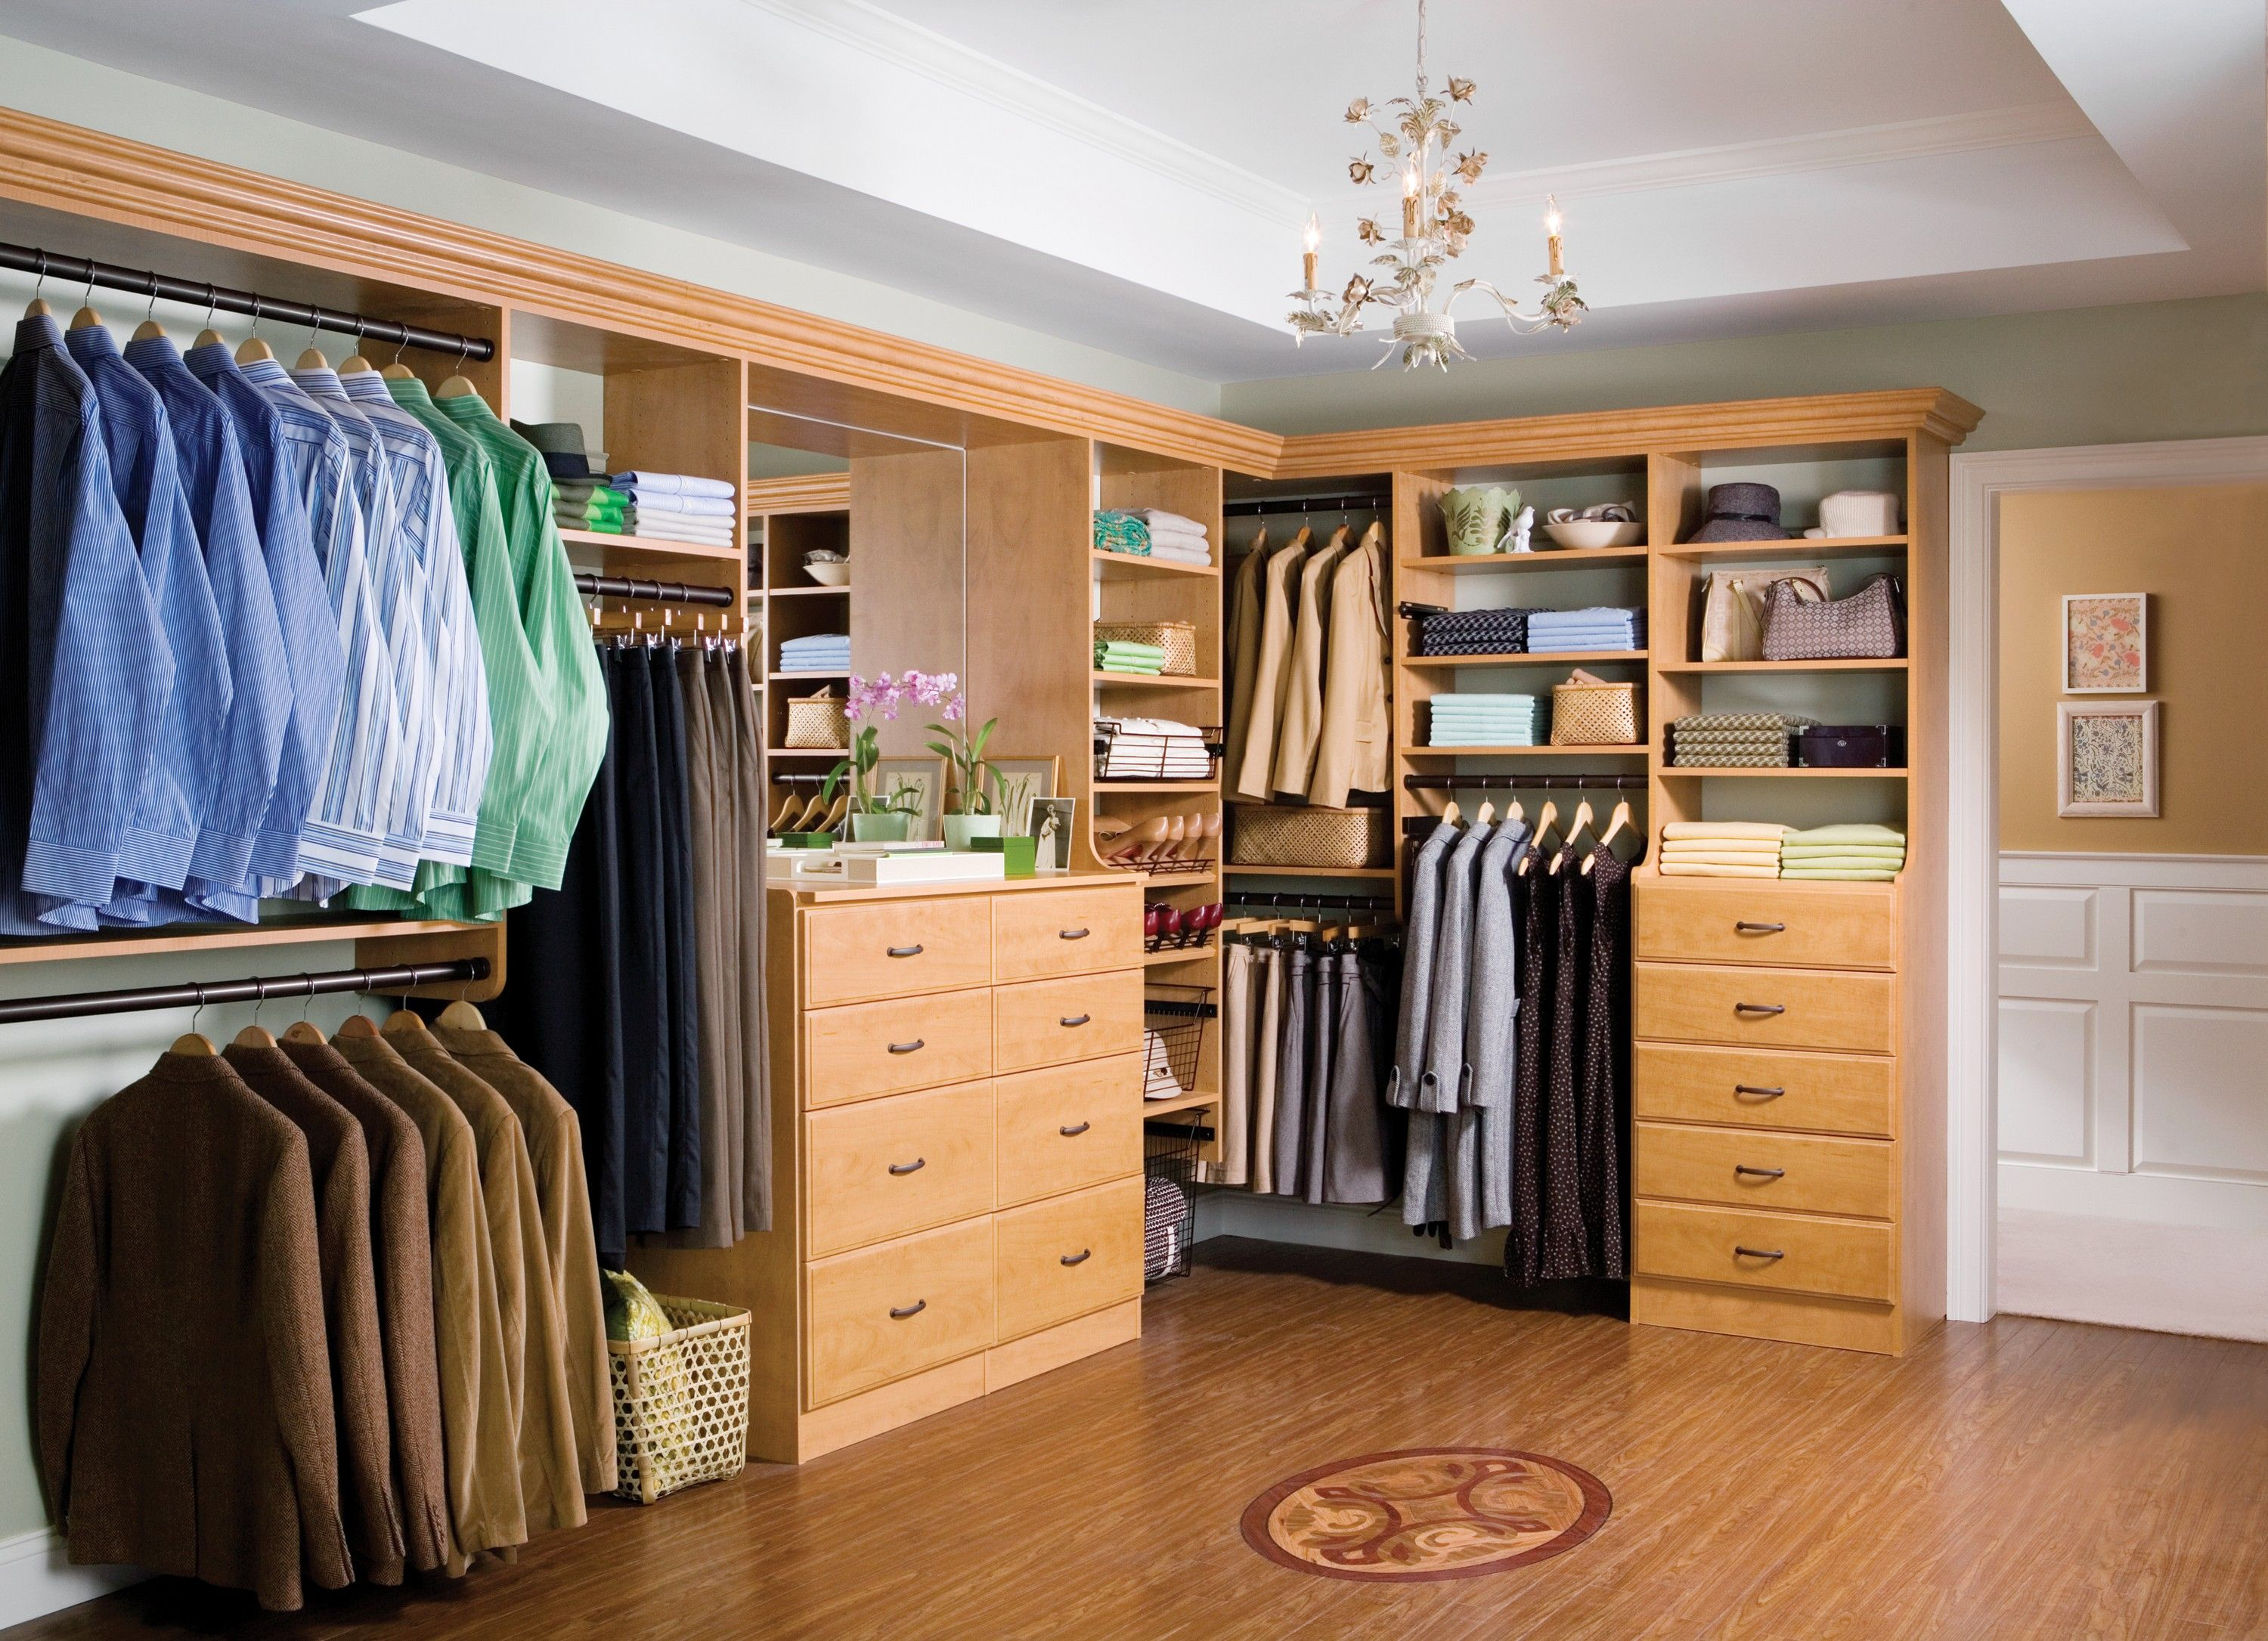 appealing large walk in closet designs with calm valet hanger rods also build wooden drawers and